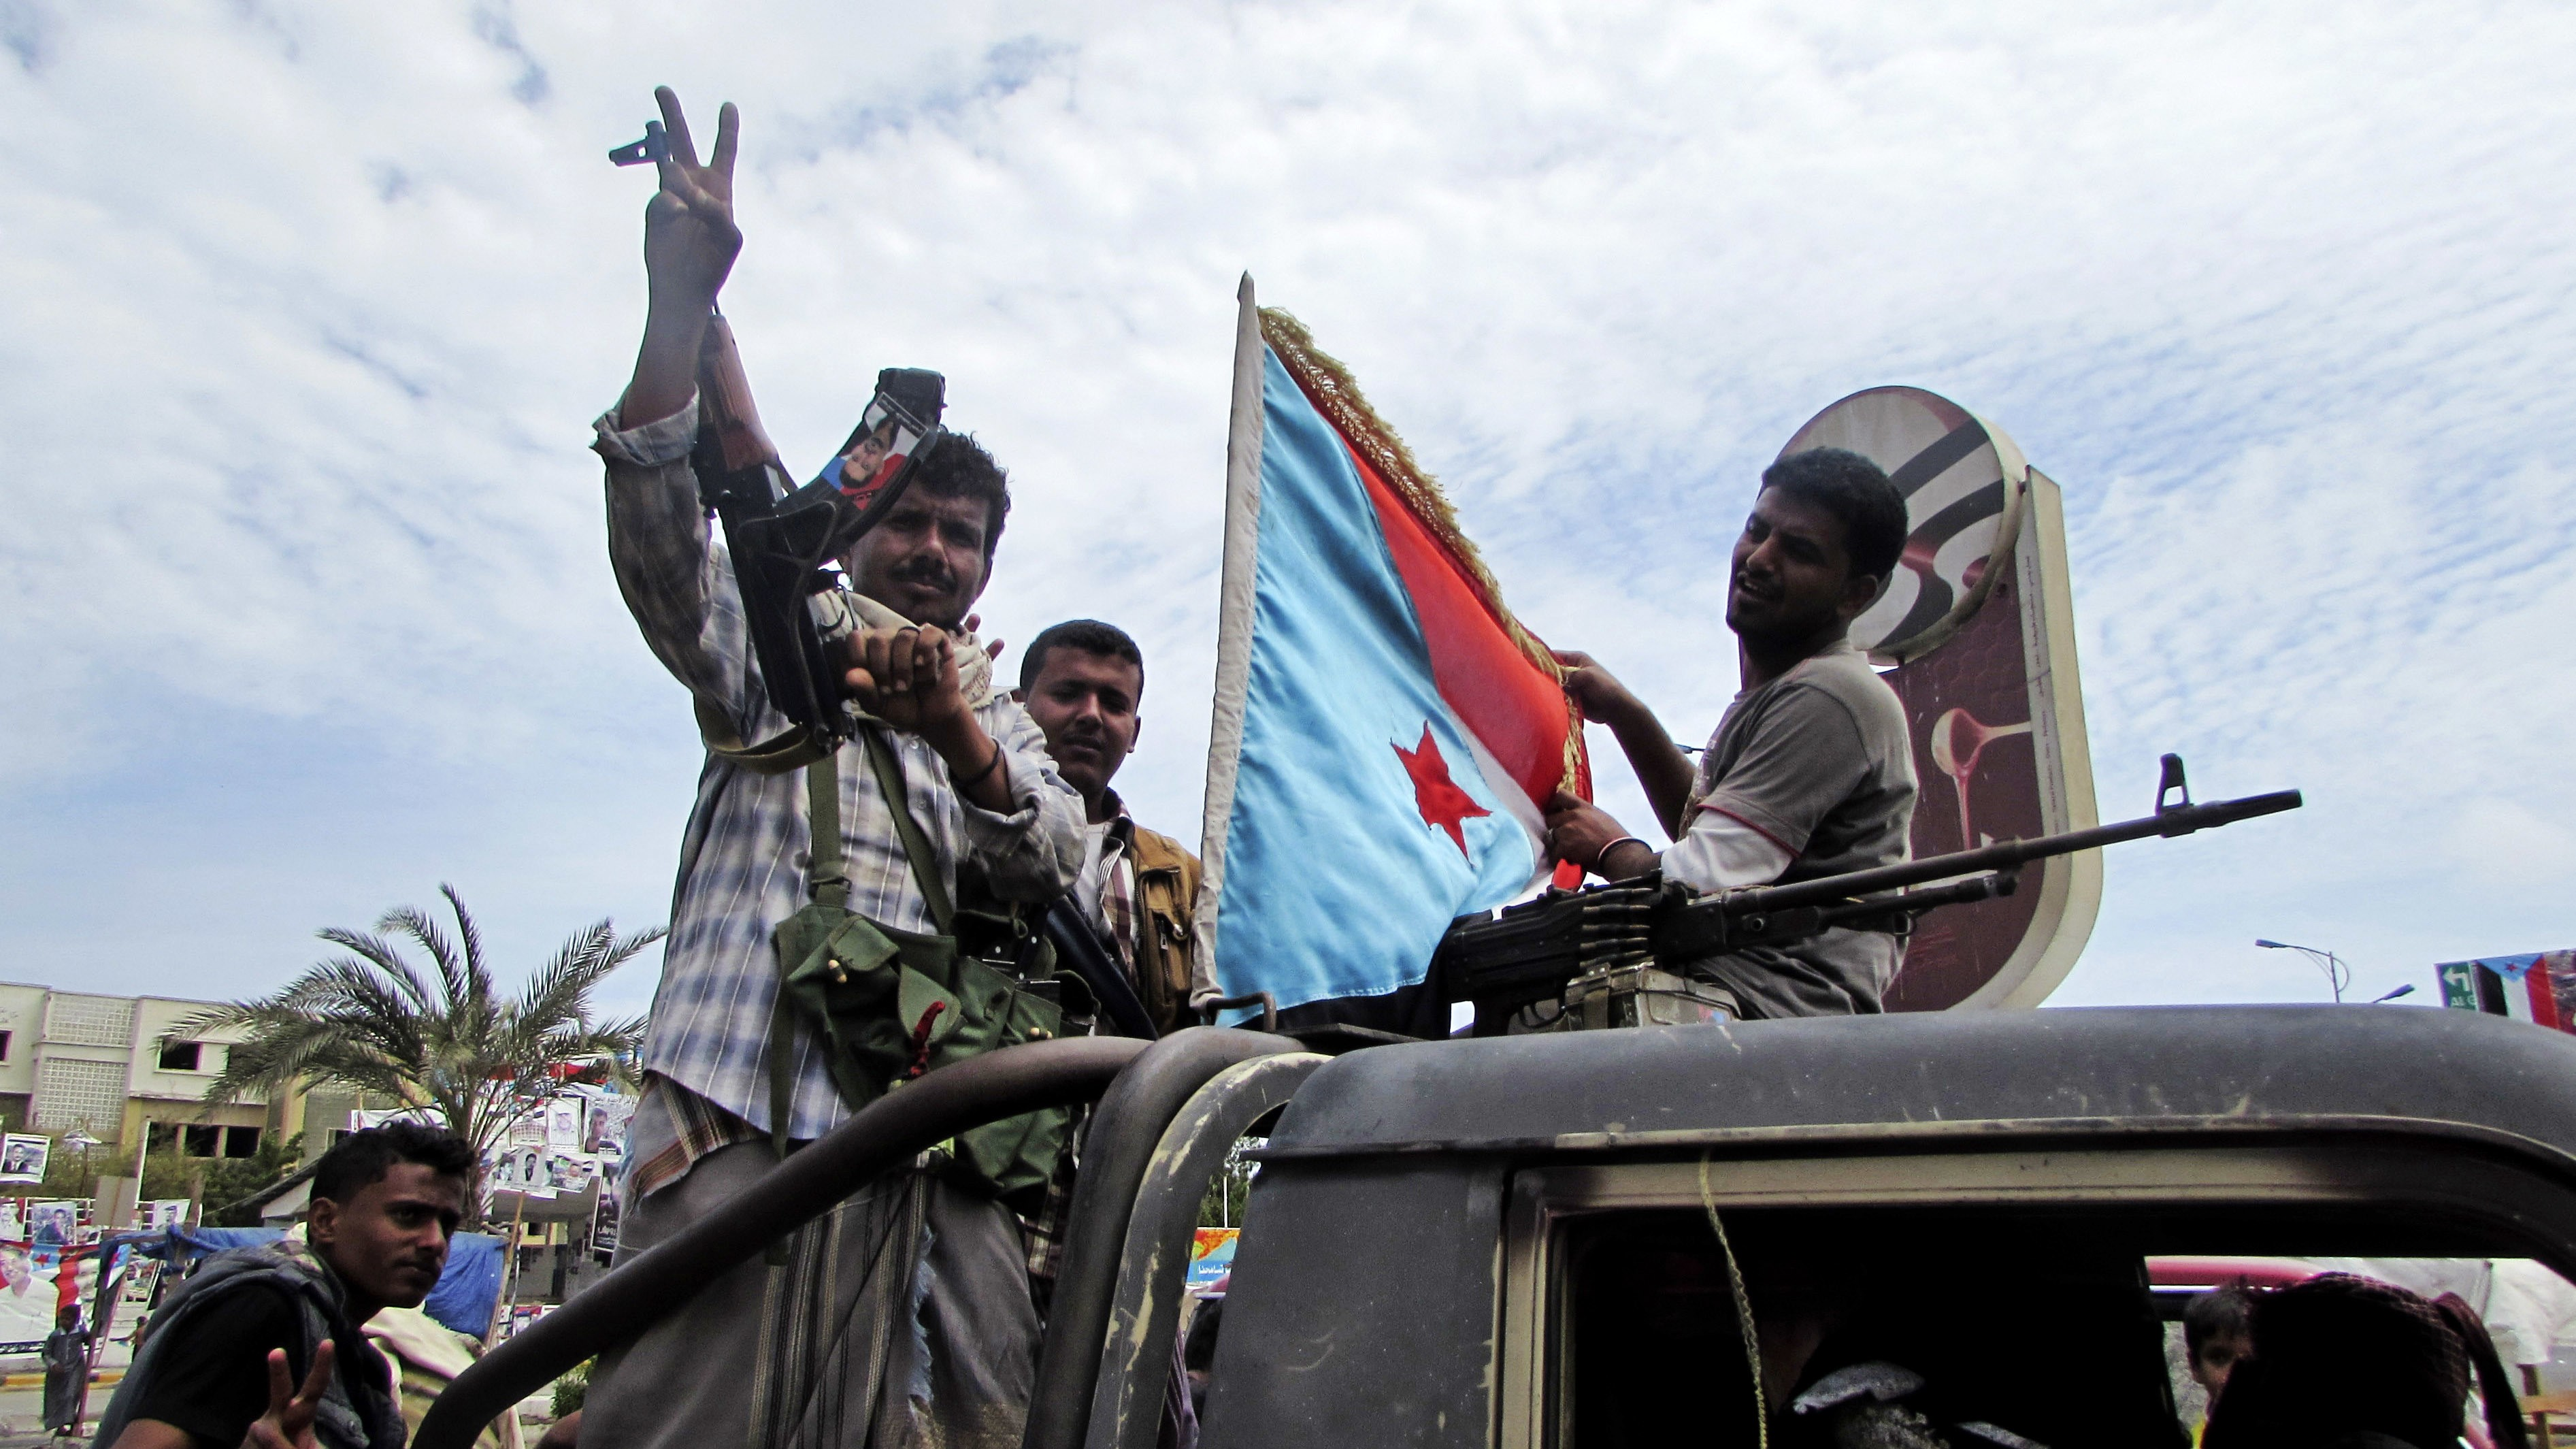 UN Advisor: Yemen Is Inching Towards the 'Edge of Civil War'